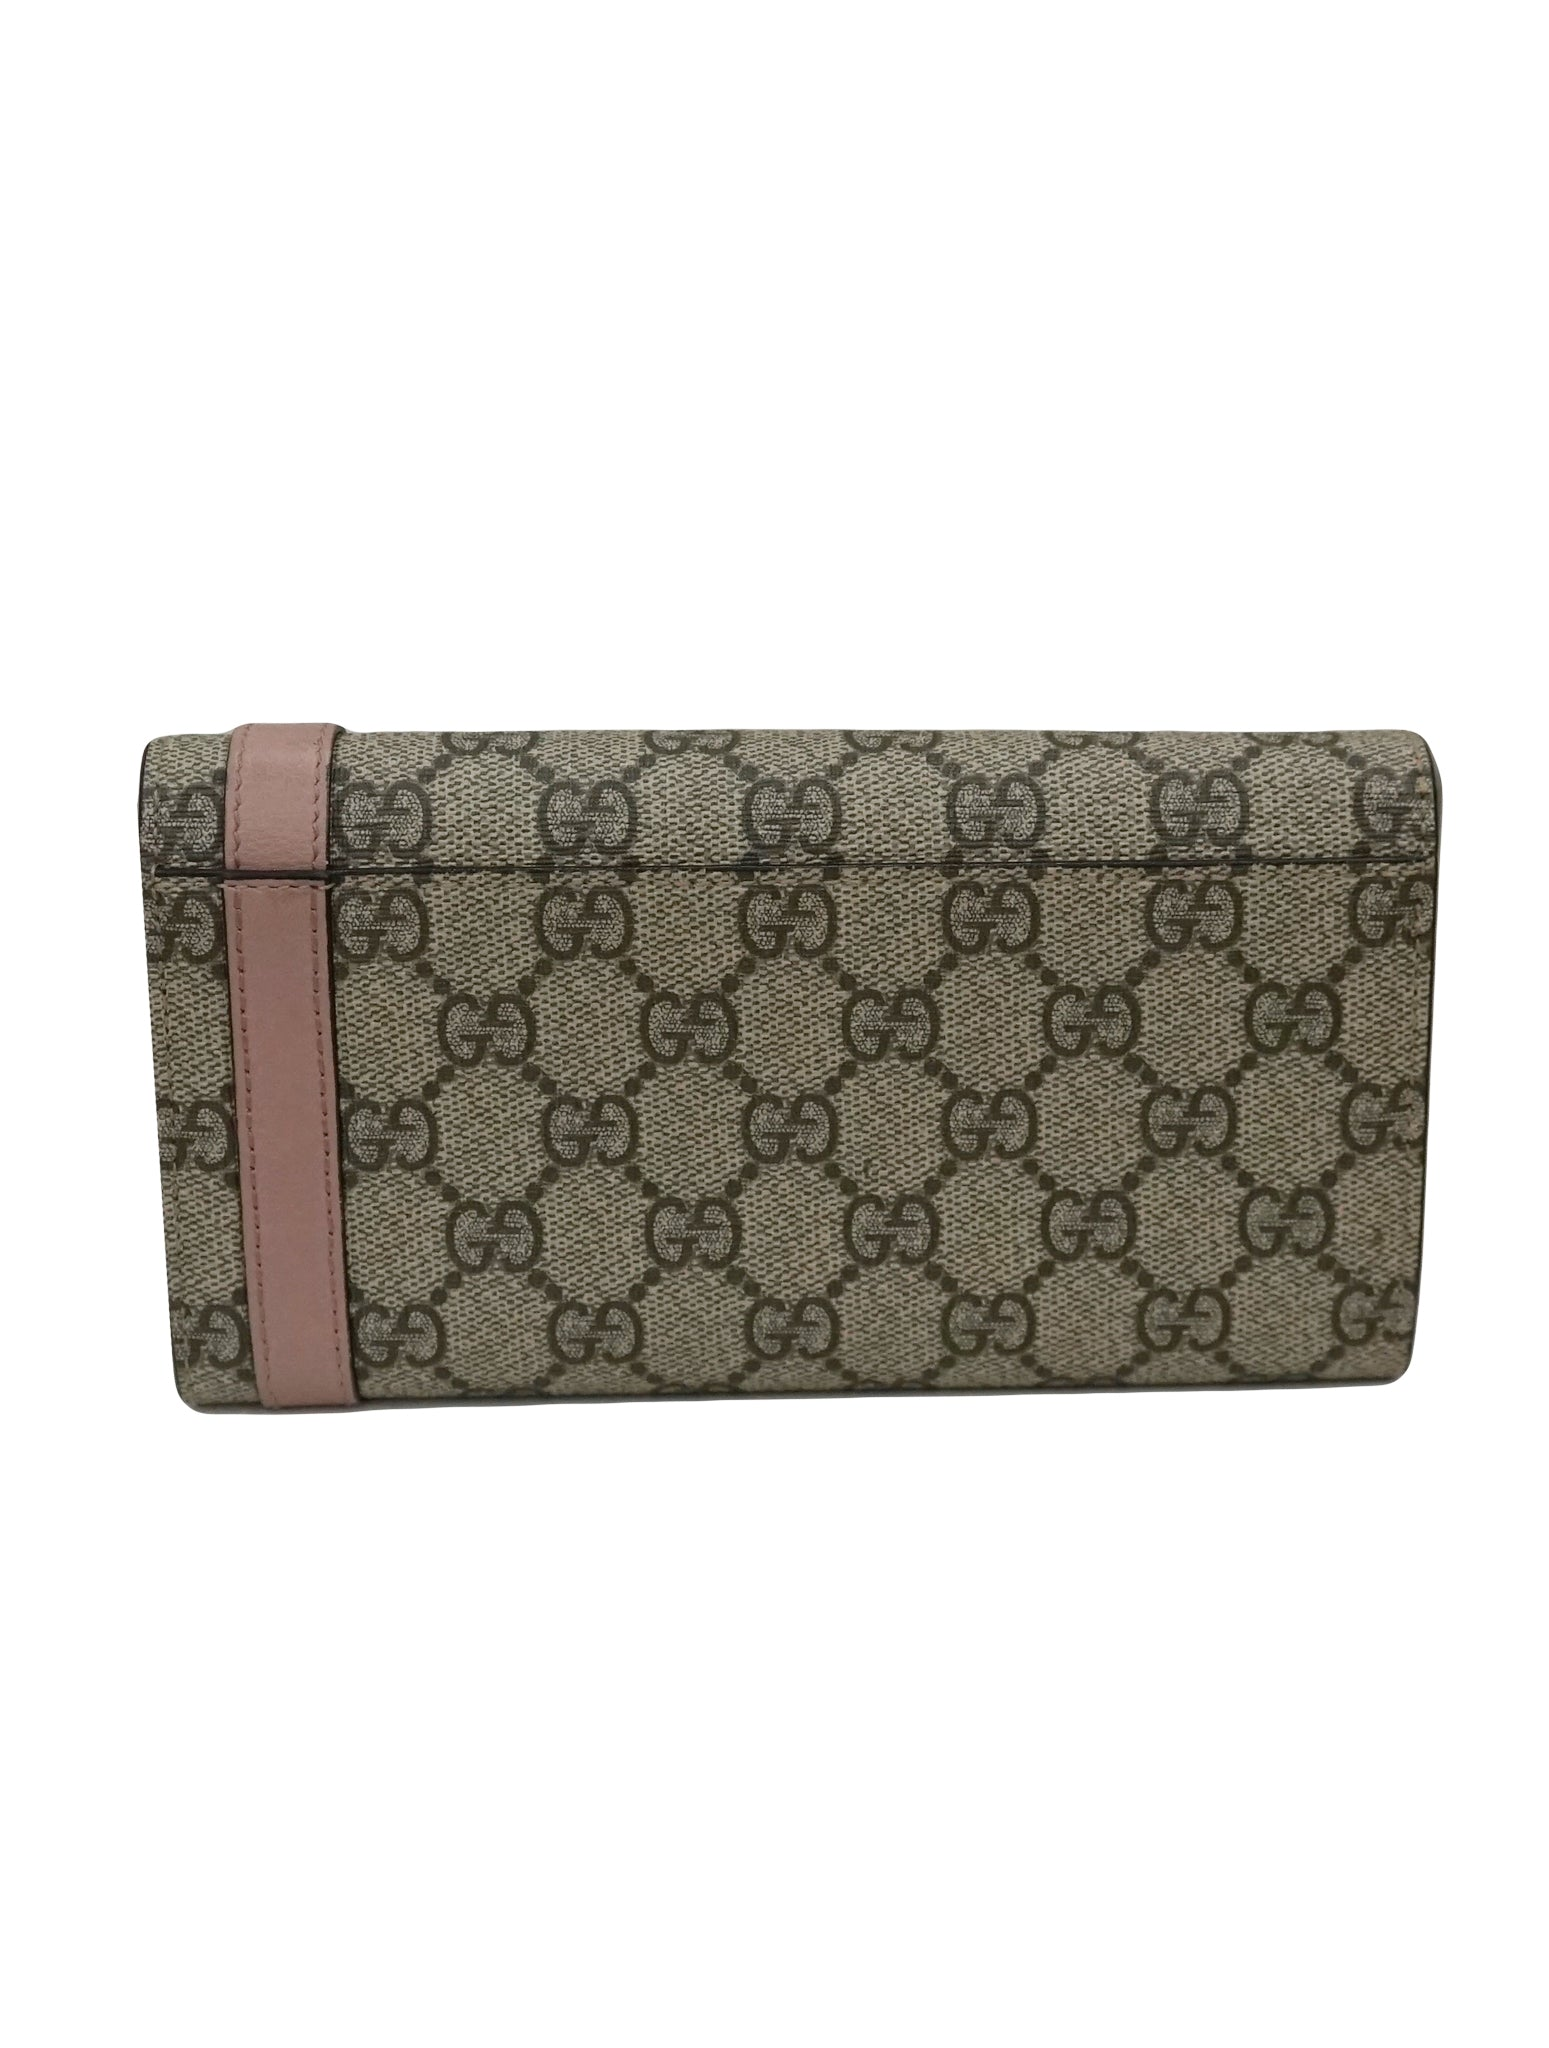 GG SUPREME CANVAS CONTINENTAL WALLET